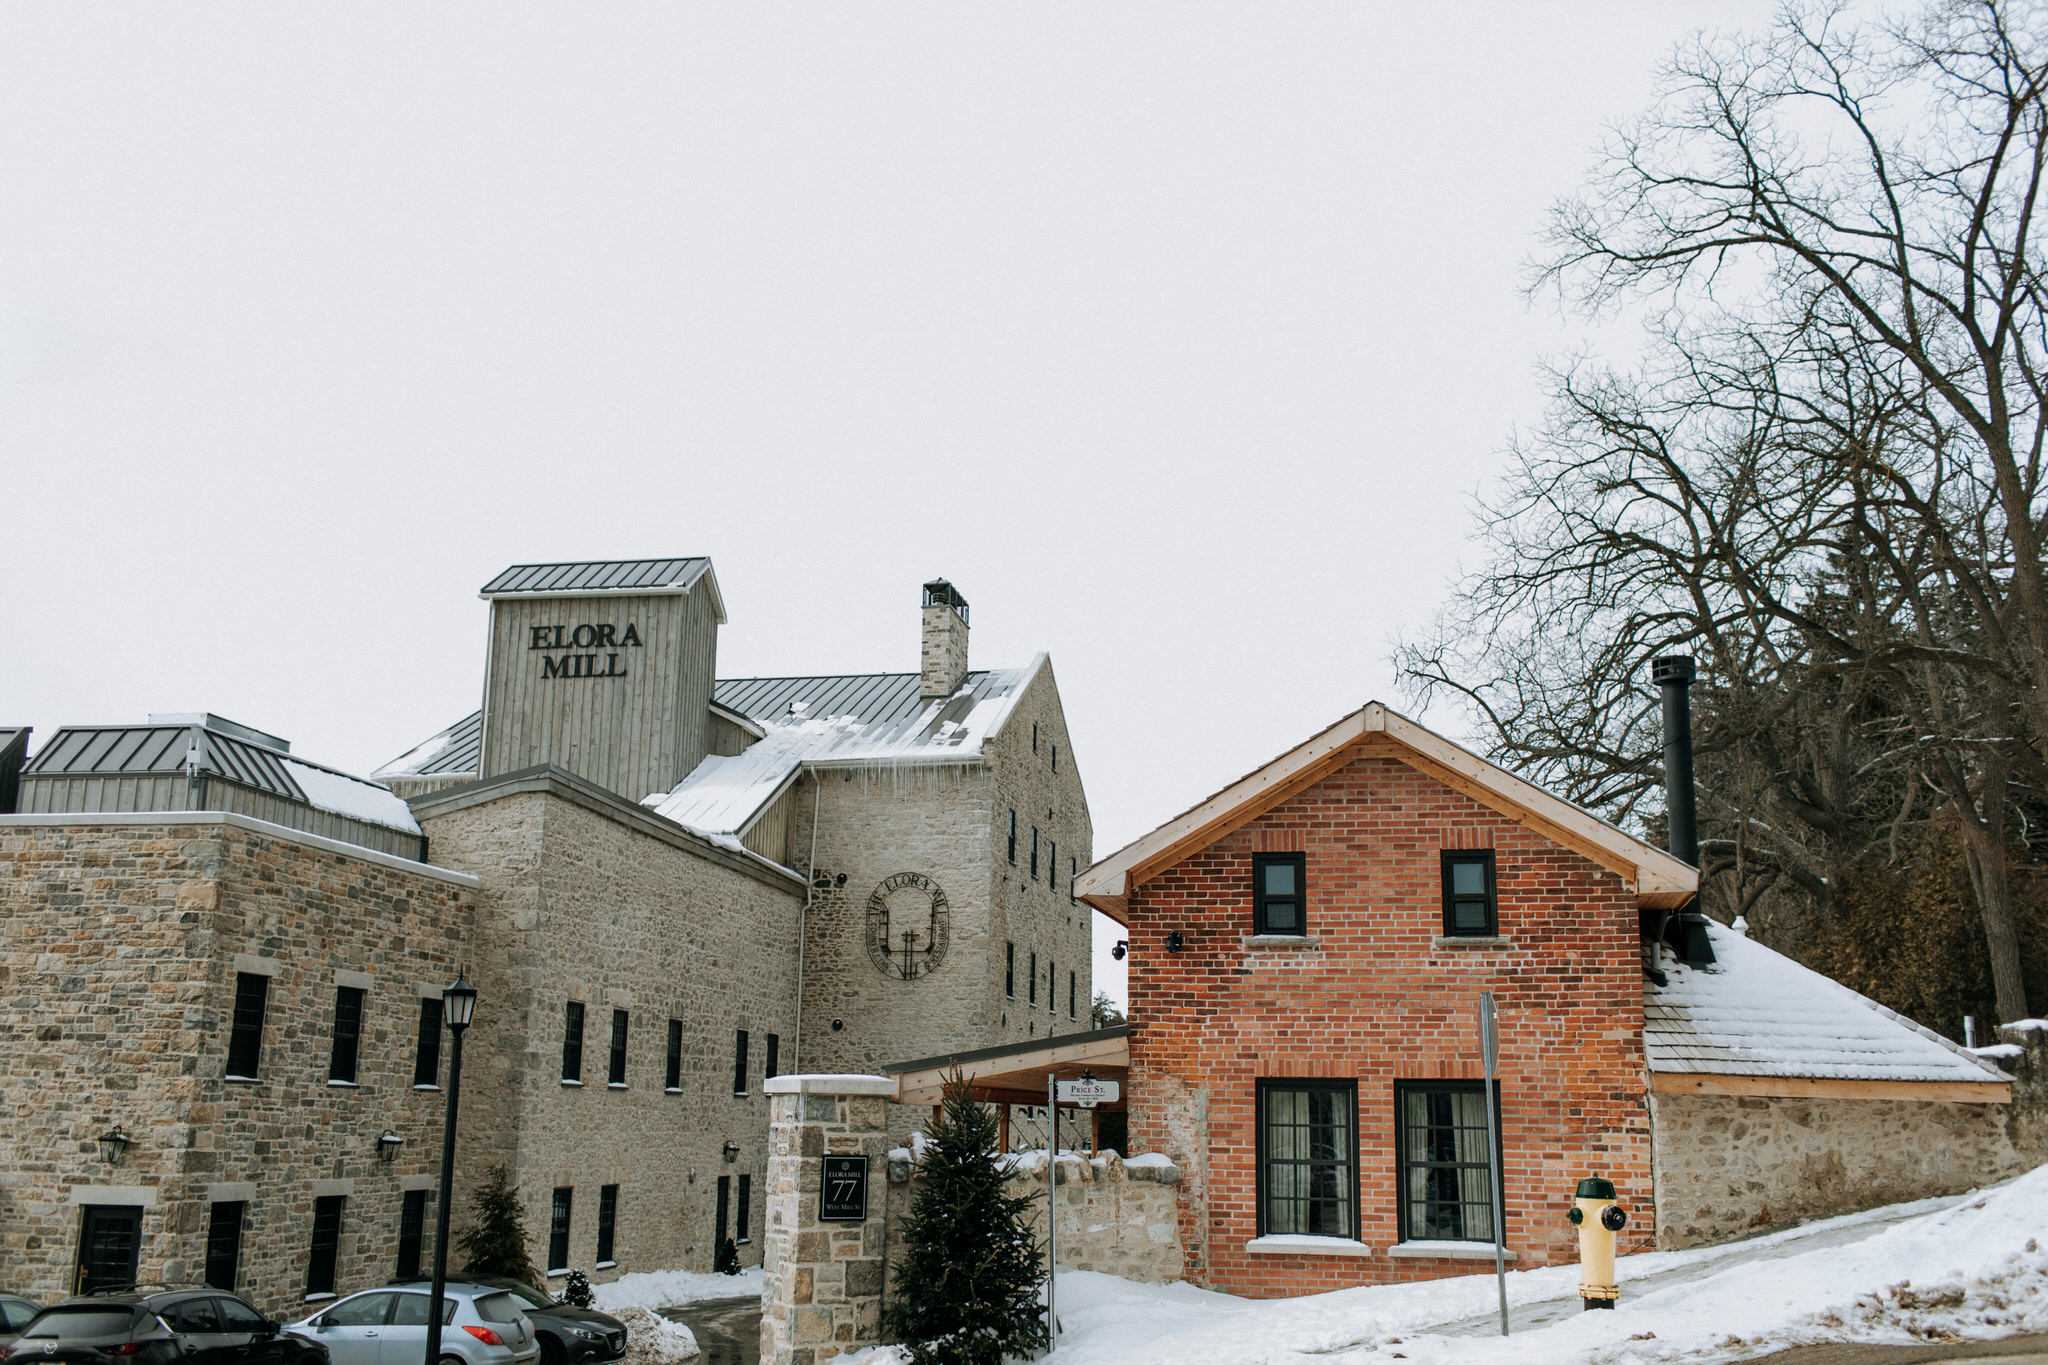 Elora Mill Wedding, Elora Mill Hotel and Spa, Winter wedding in Elora, Elora Gorge wedding